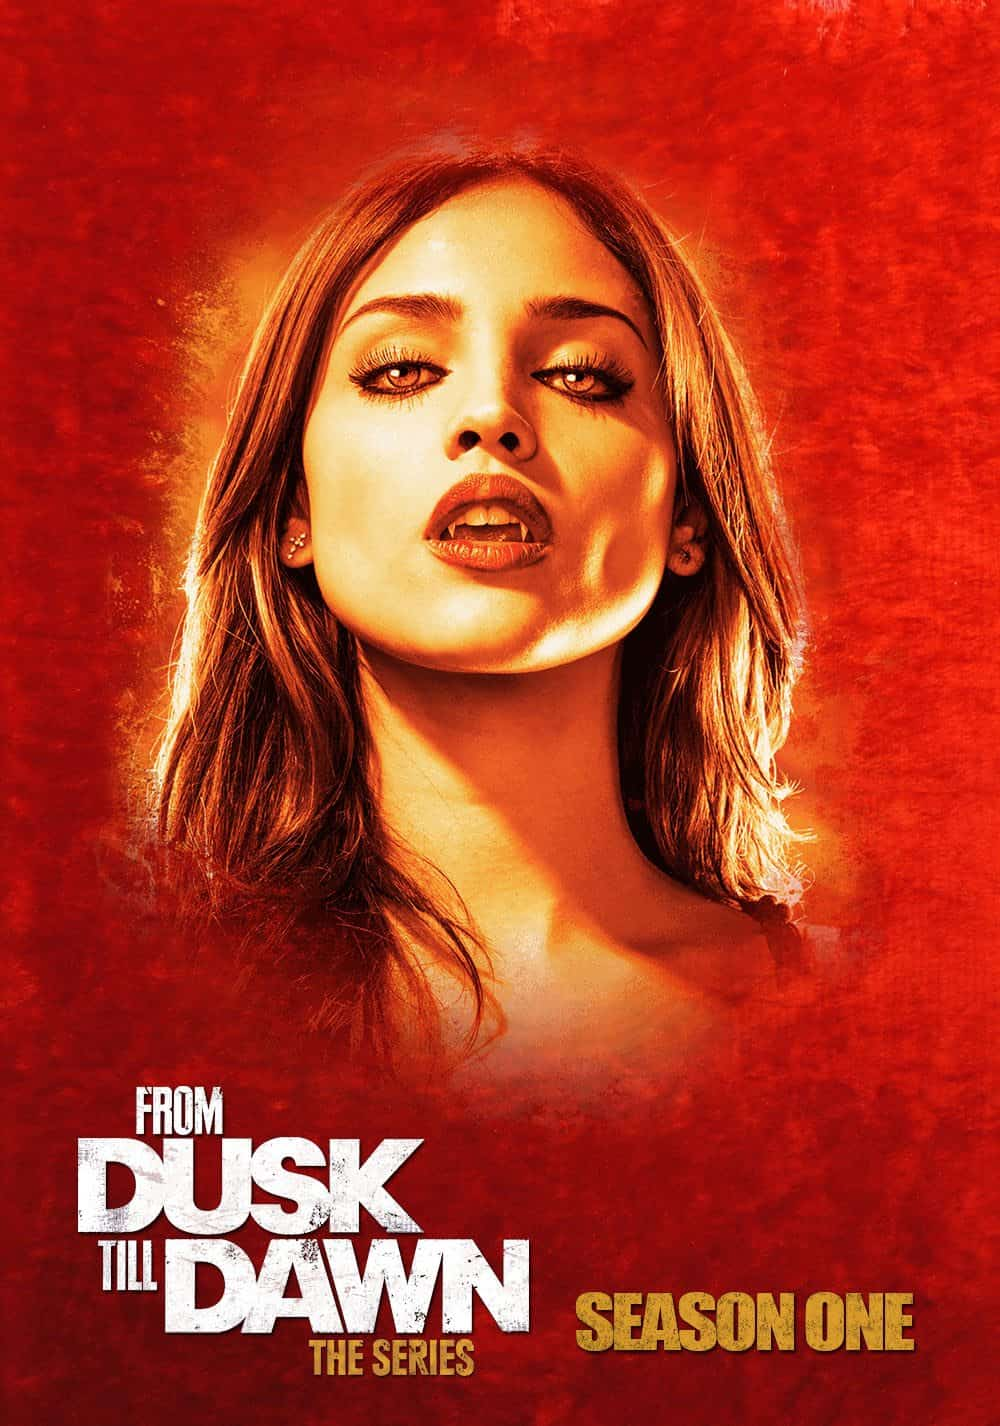 TV Series Review: From Dusk Till Dawn – Season 1